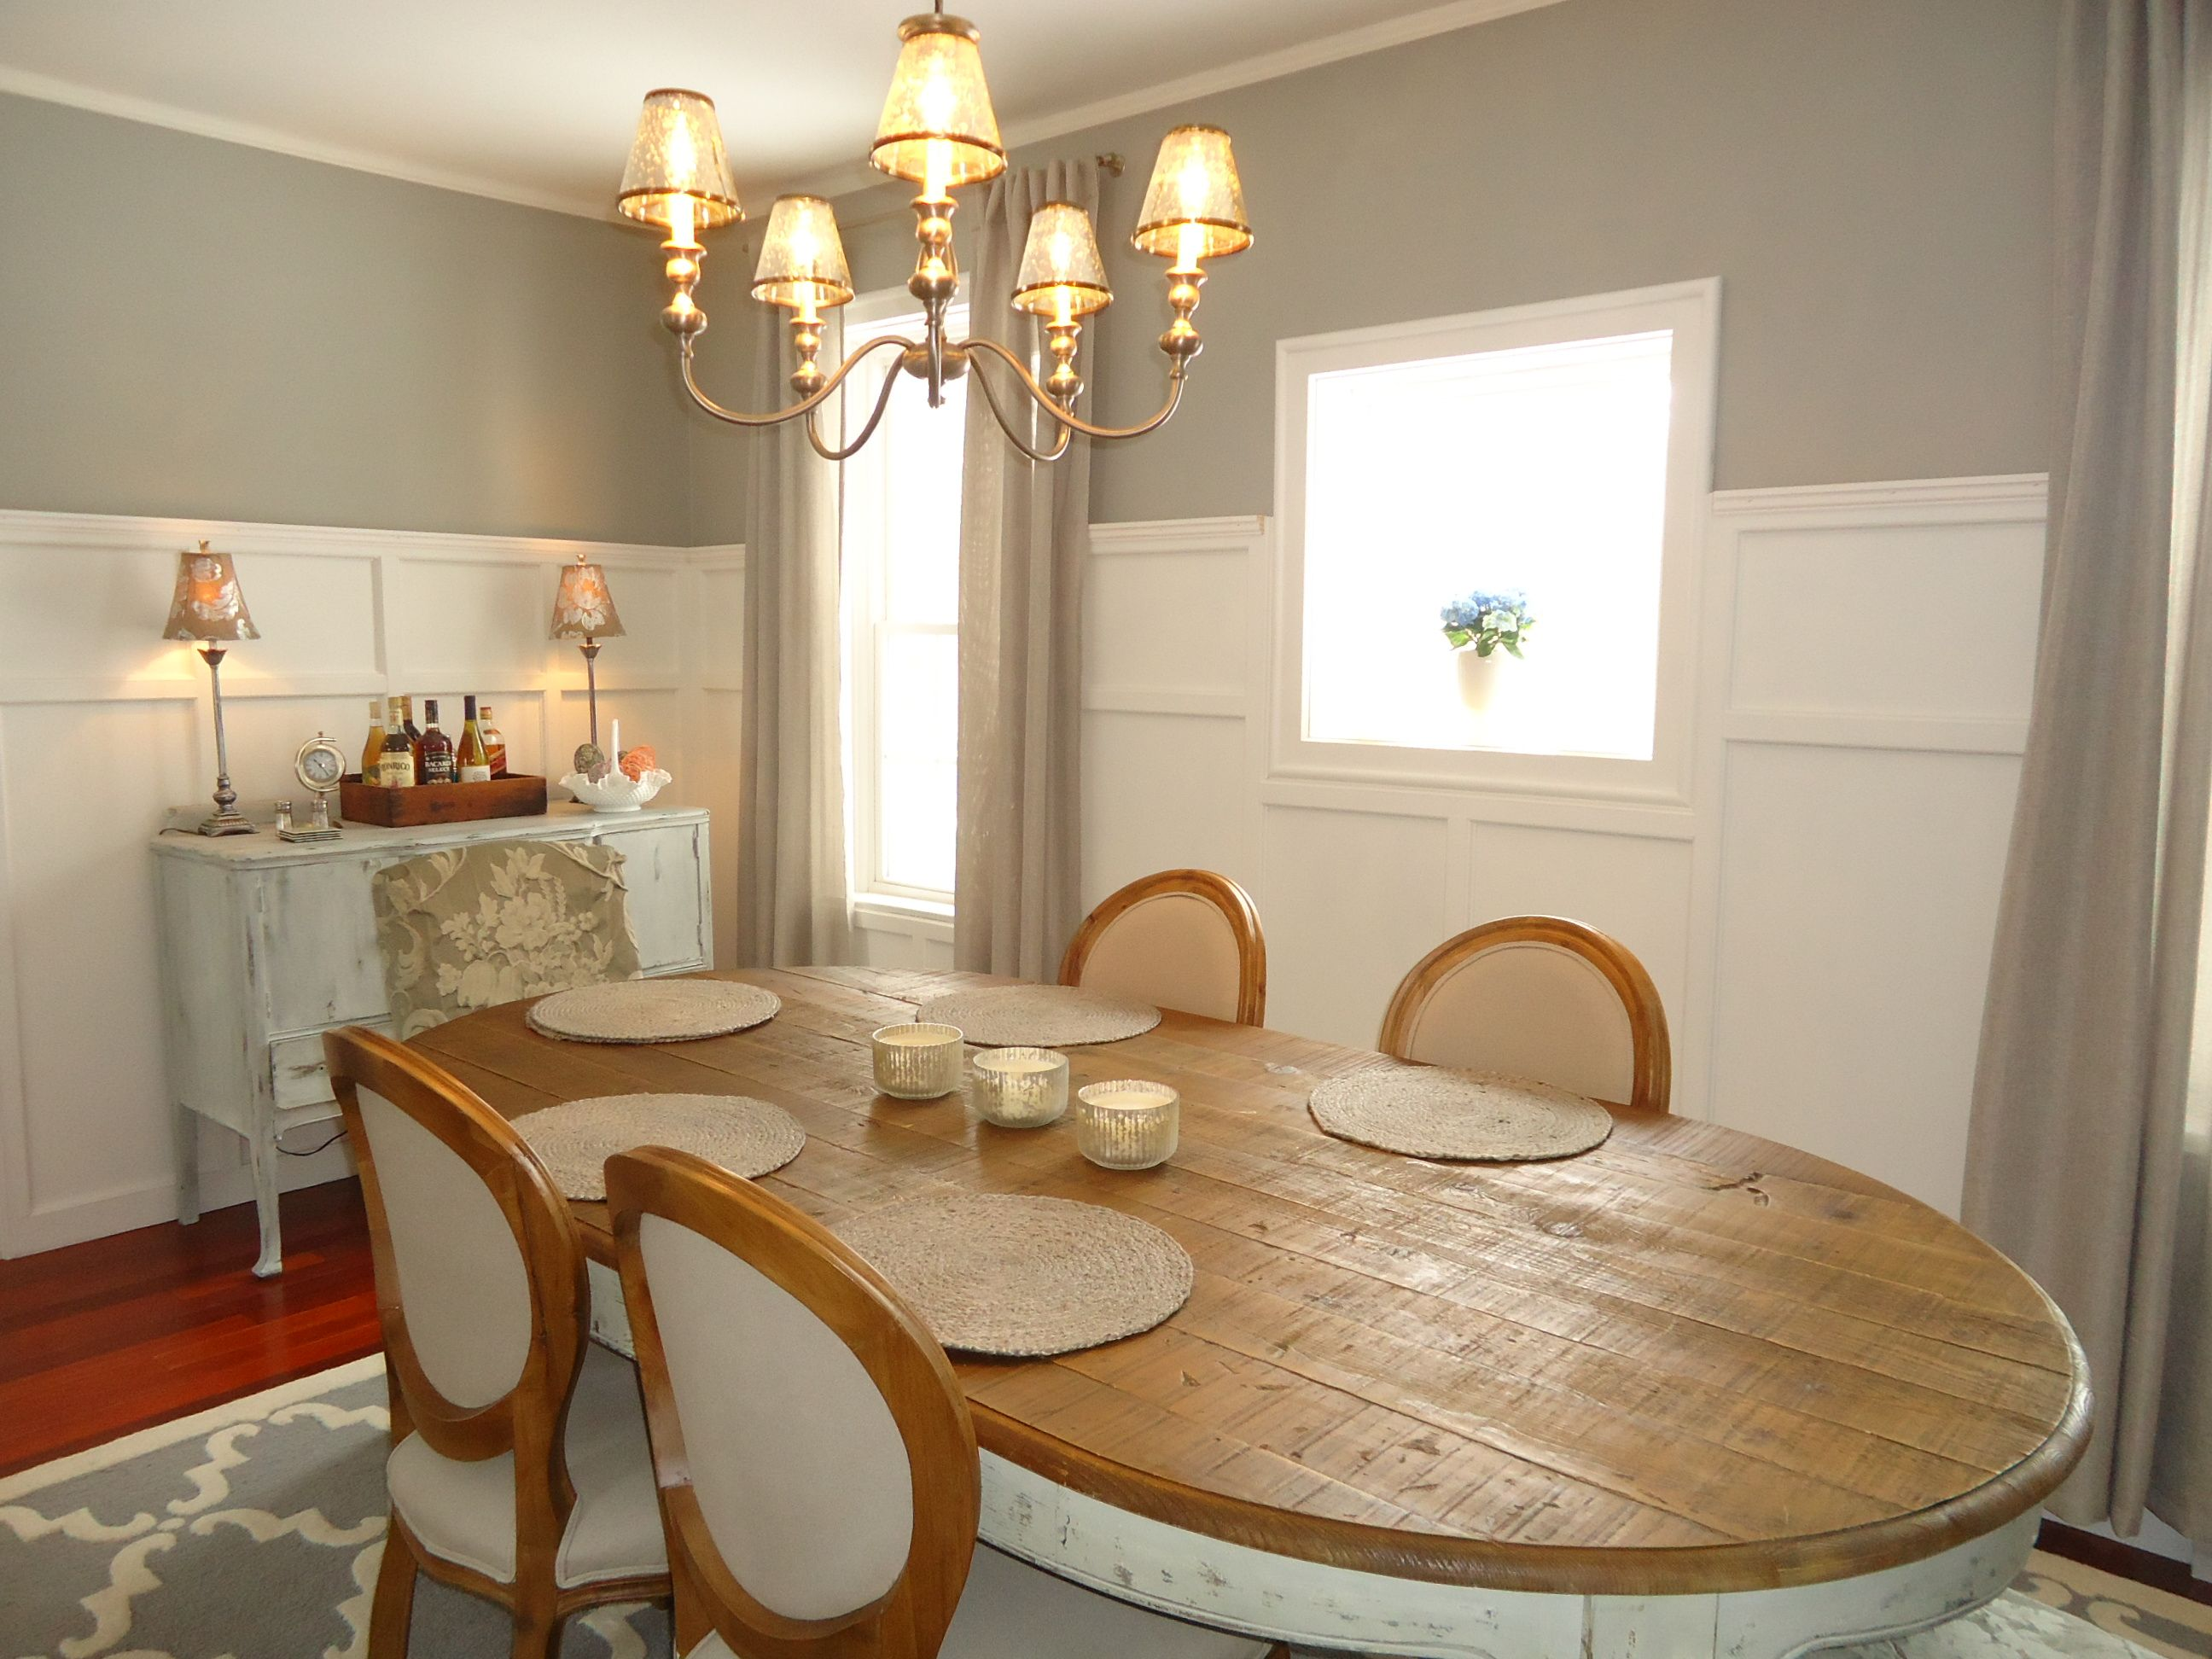 Enjoyable Finally Chose A Warm Gray Color For Dining Area Home Interior And Landscaping Pimpapssignezvosmurscom